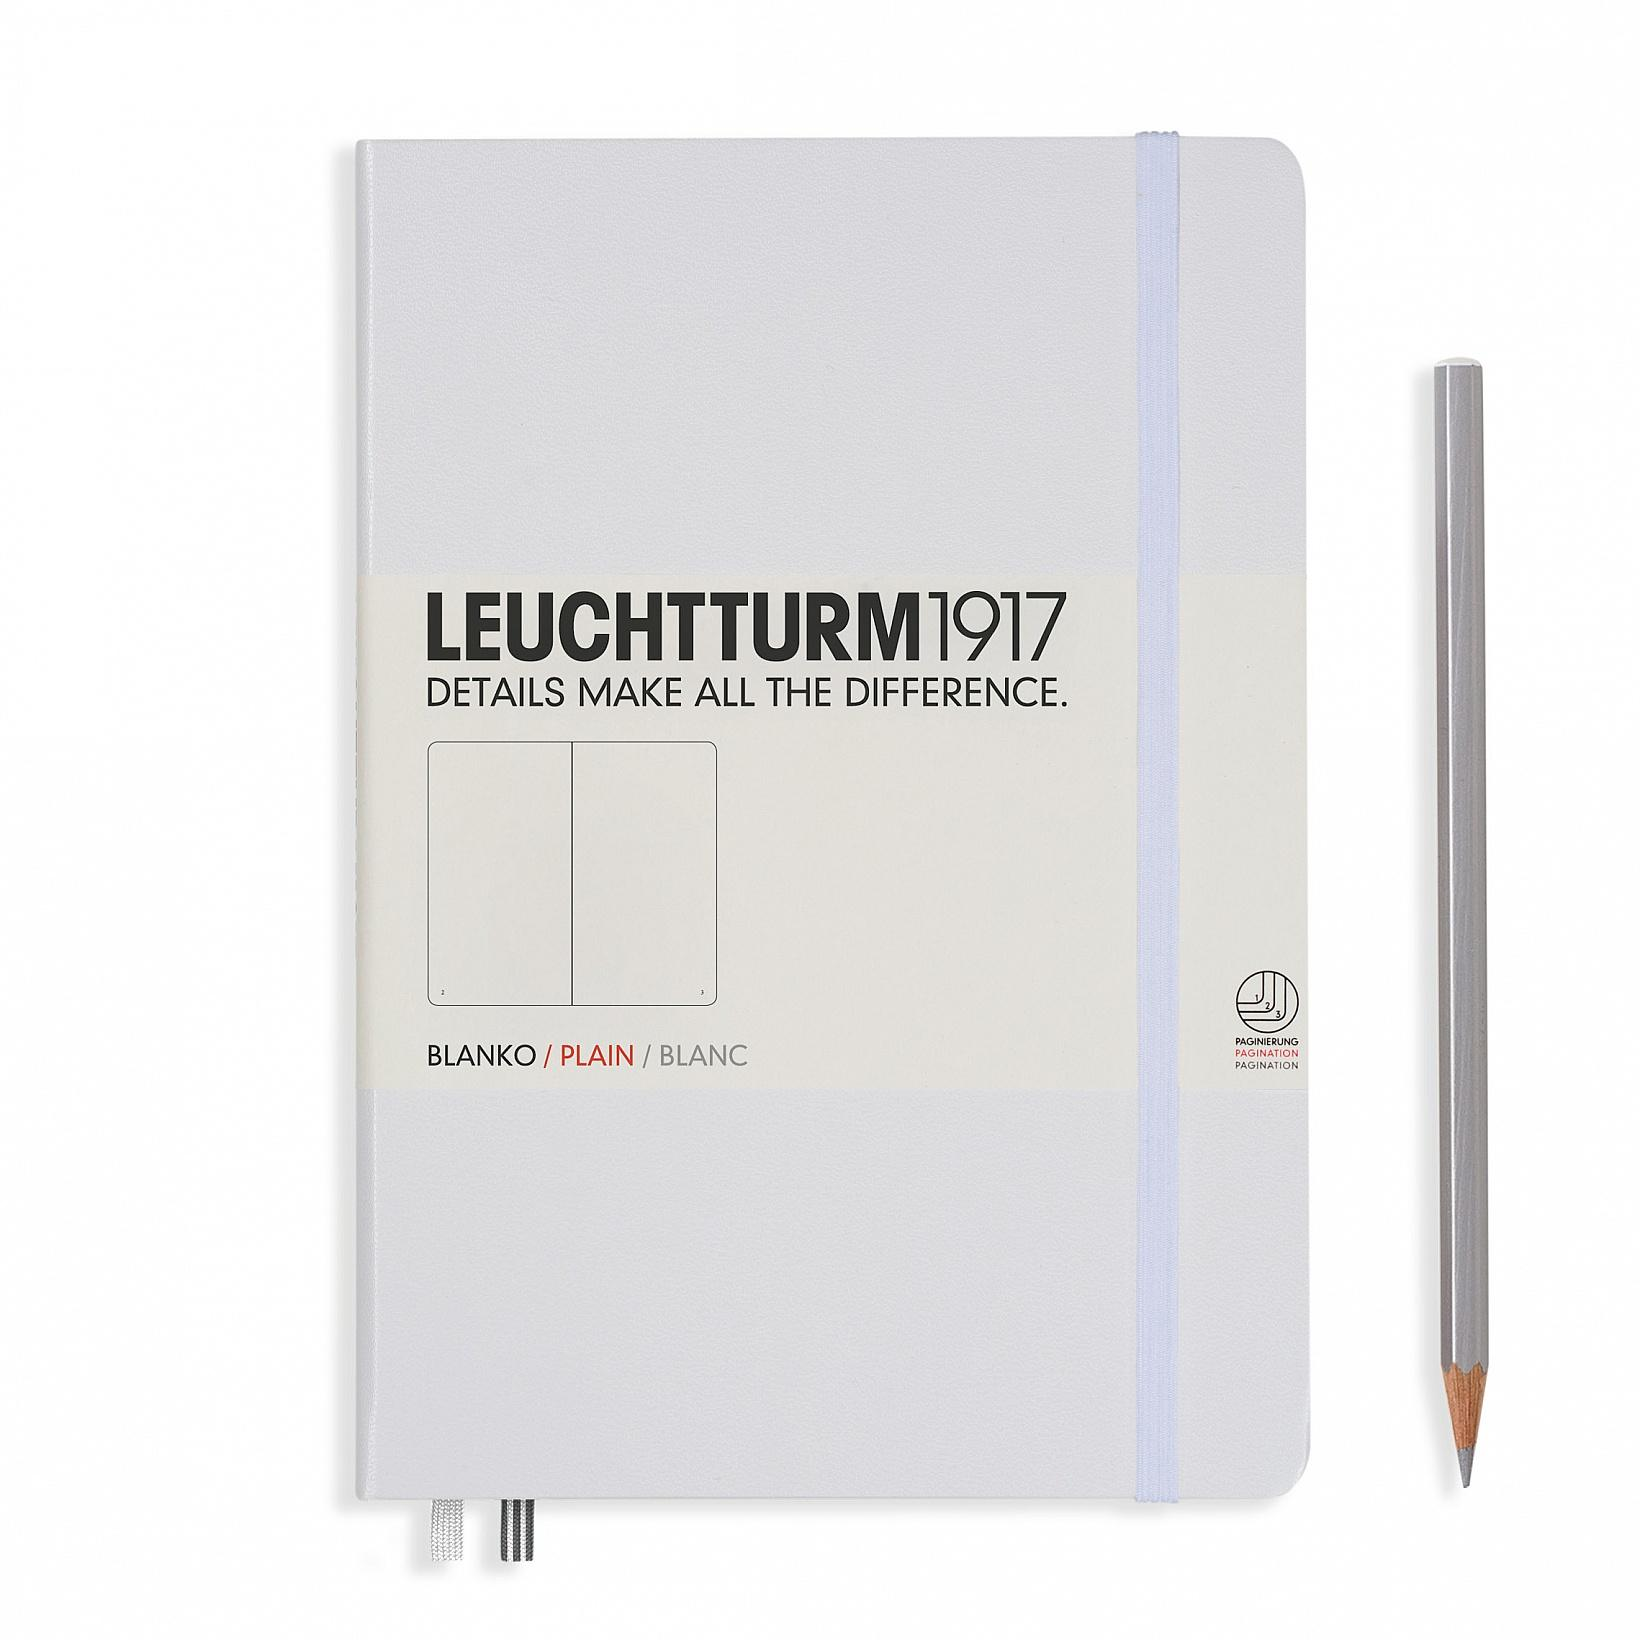 Leuchtturm 1917 A5 Medium Hardcover 249ct White Plain